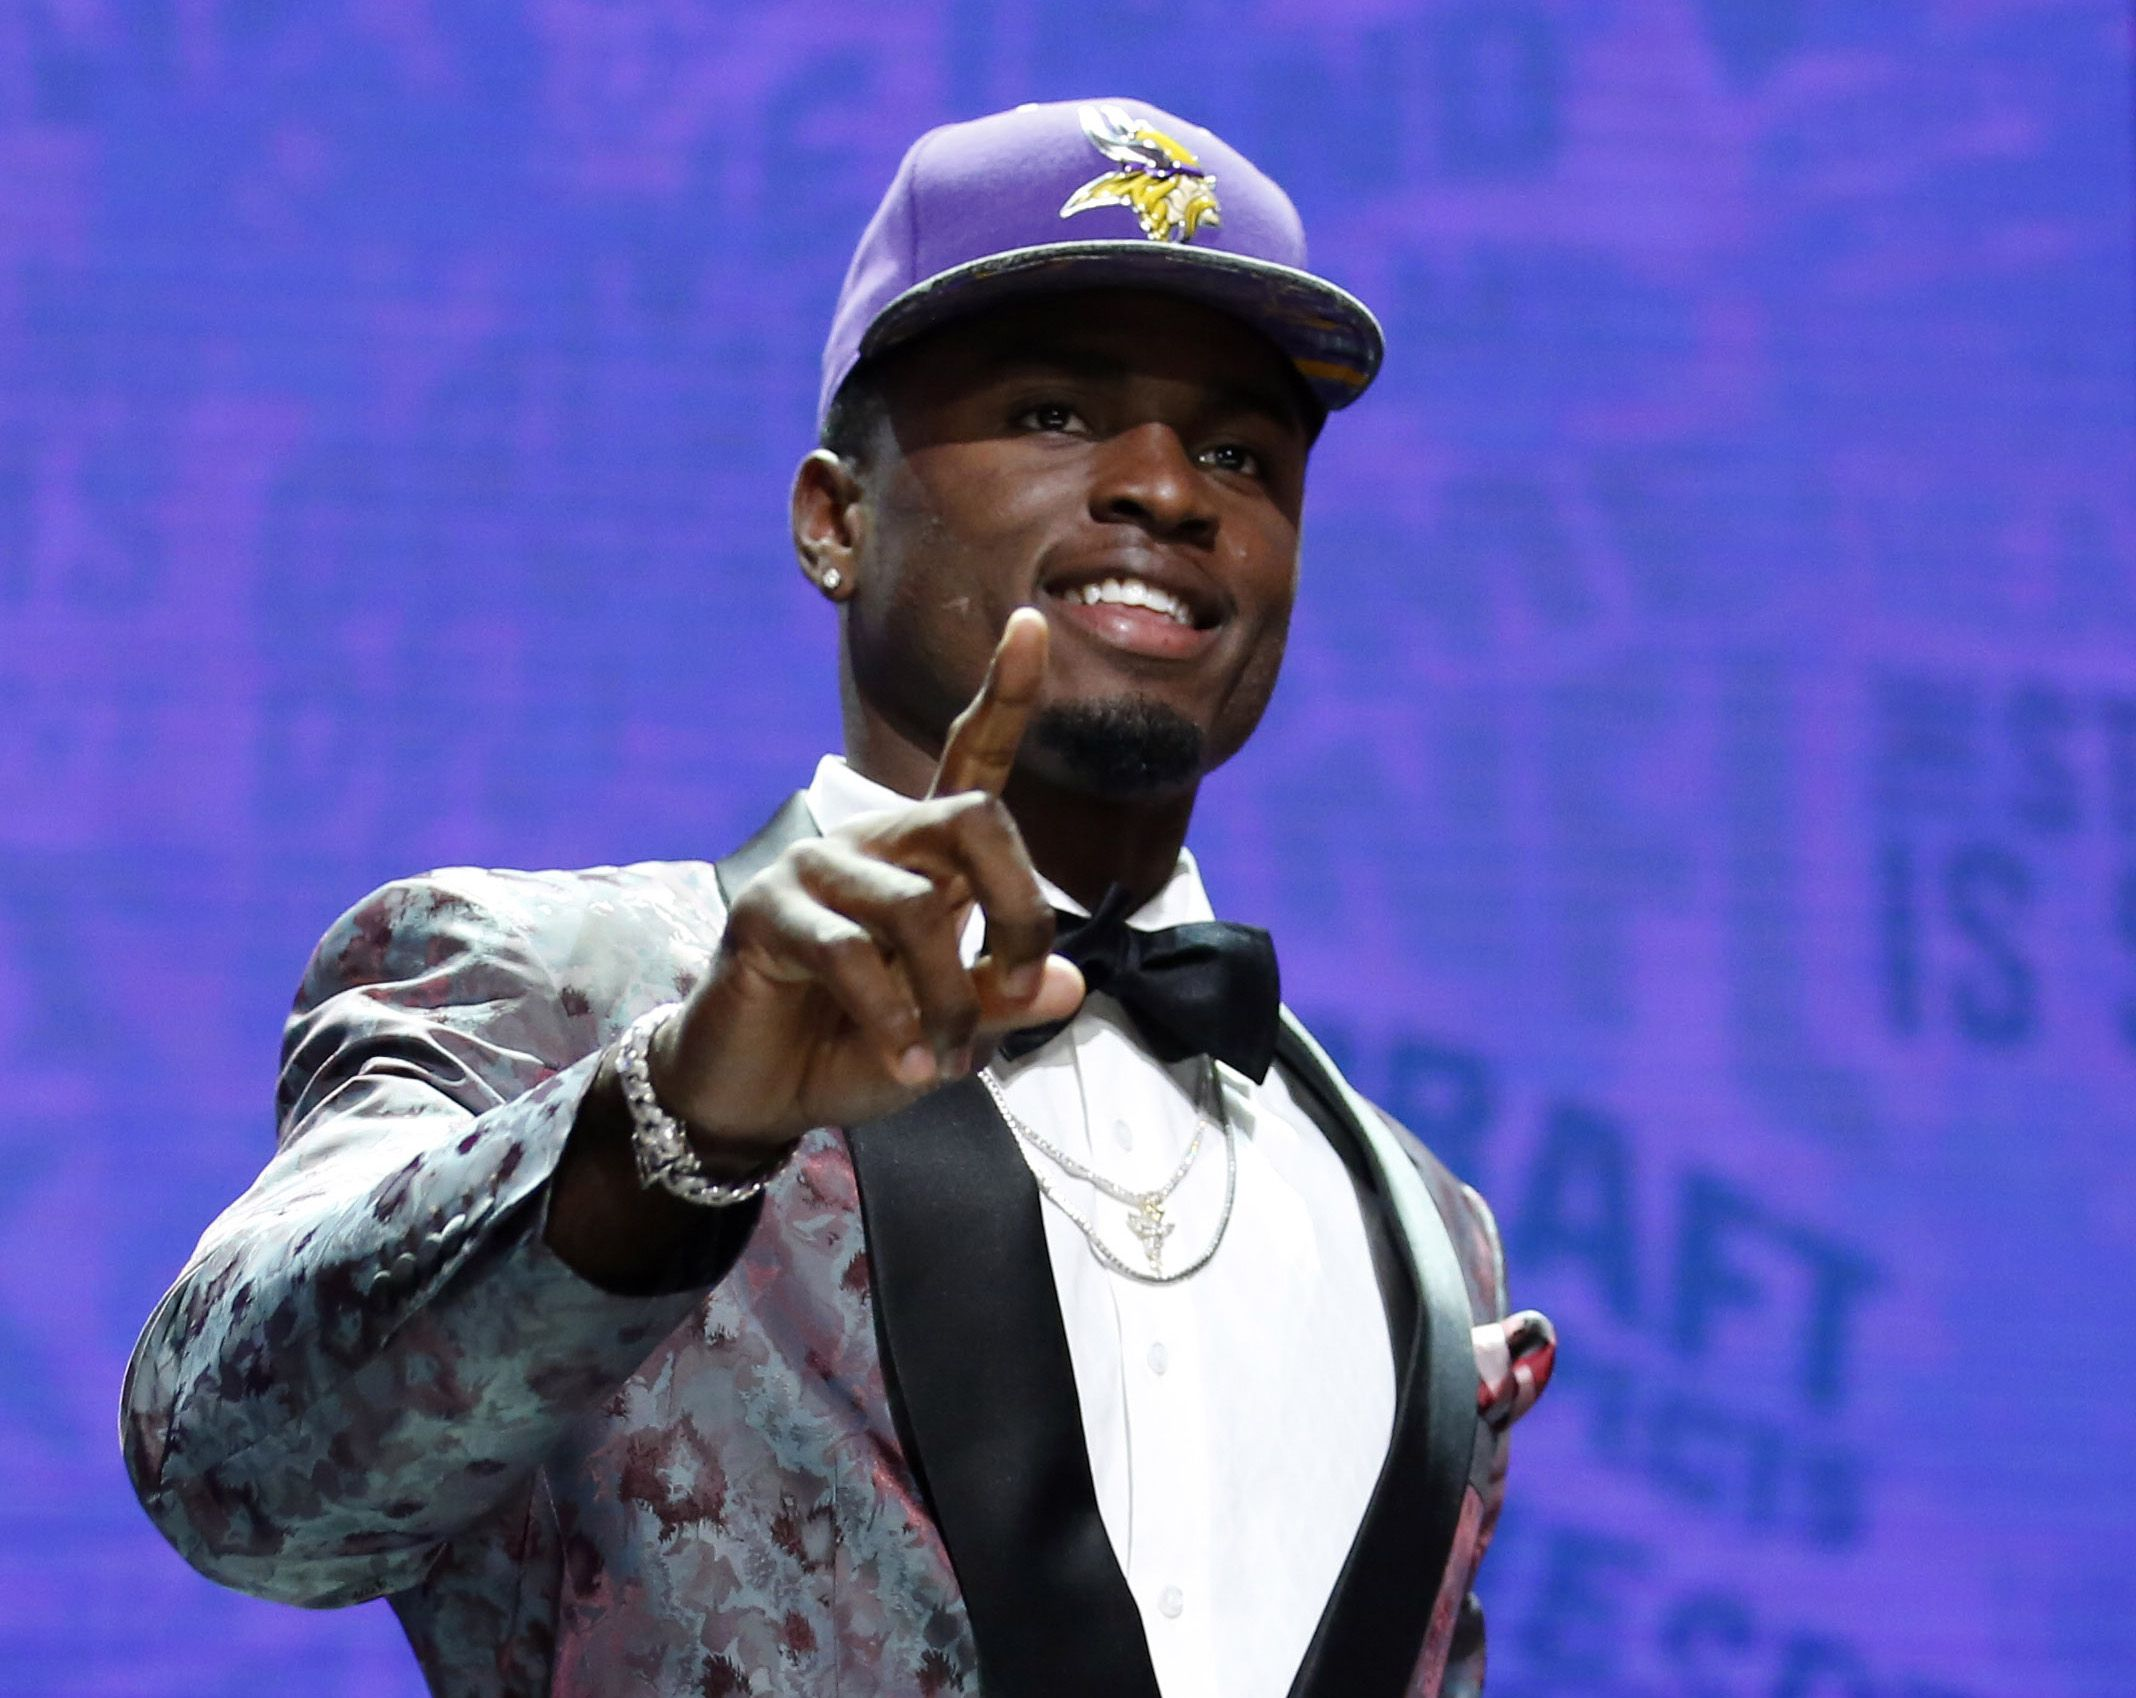 Top 10 takeaways from the 2016 NFL Draft The 2016 NFL